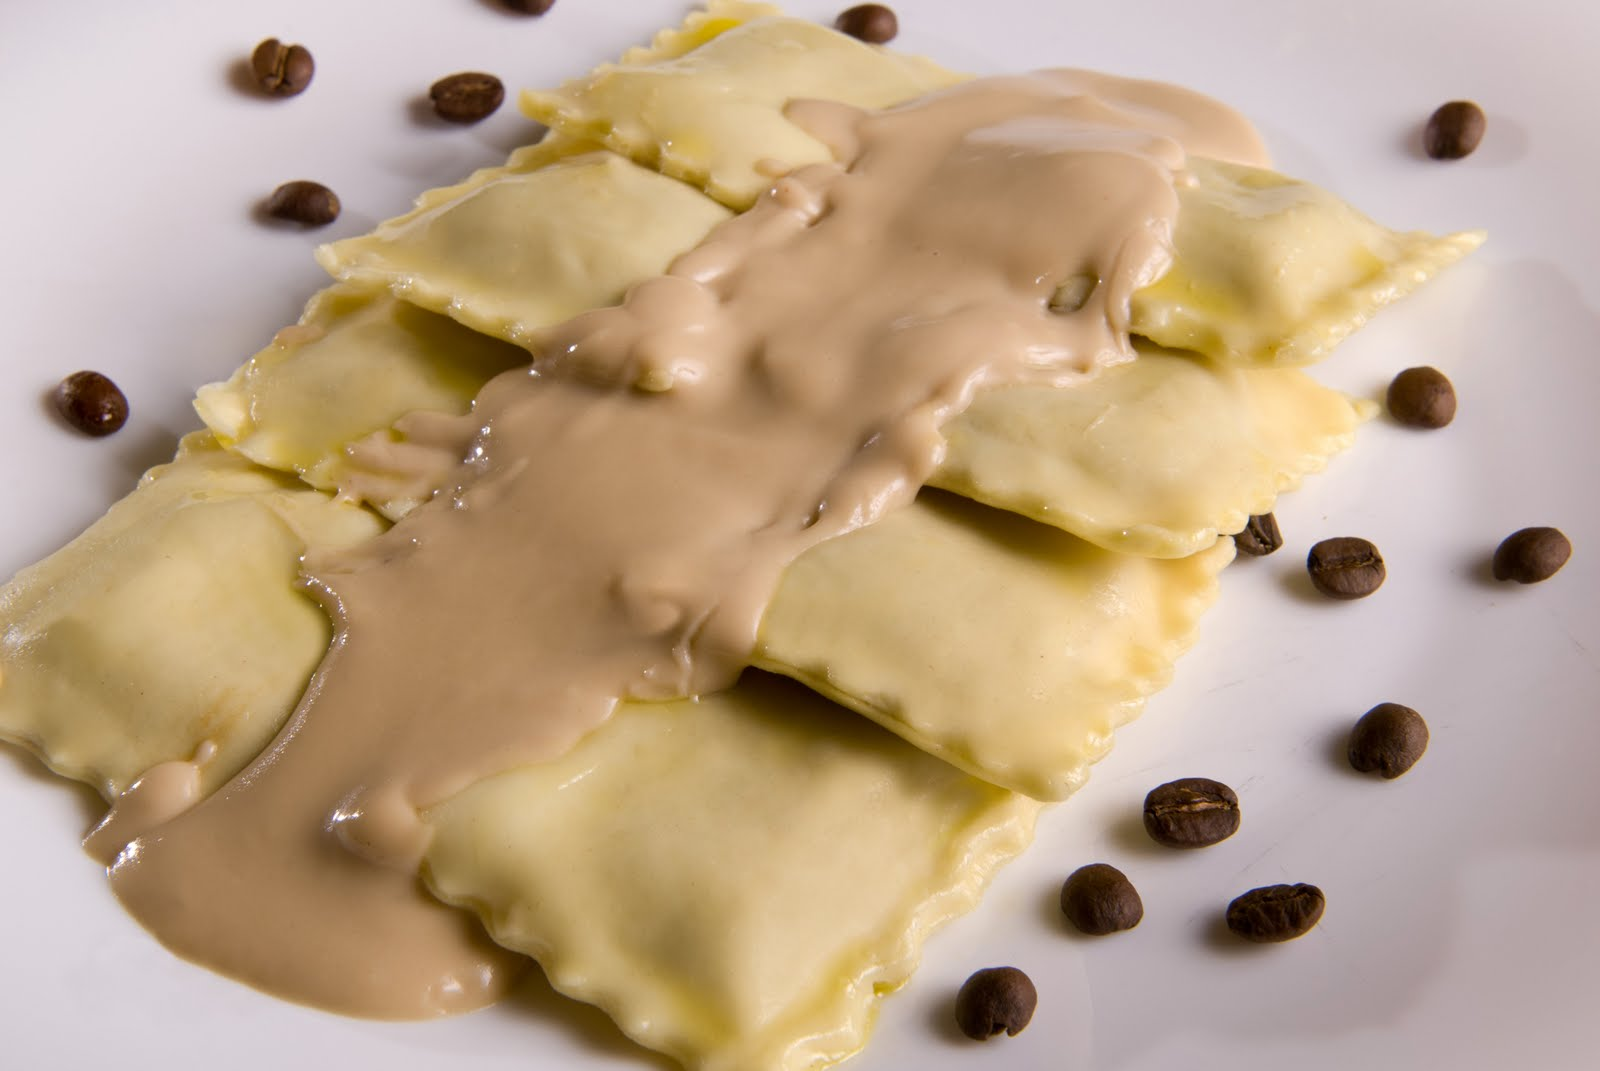 banana pizza ravioli Fresh pizza, pasta & sauces  fried chocolate-banana ravioli 2013-08-06 https:  (180°c) gently slide a few of the ravioli.